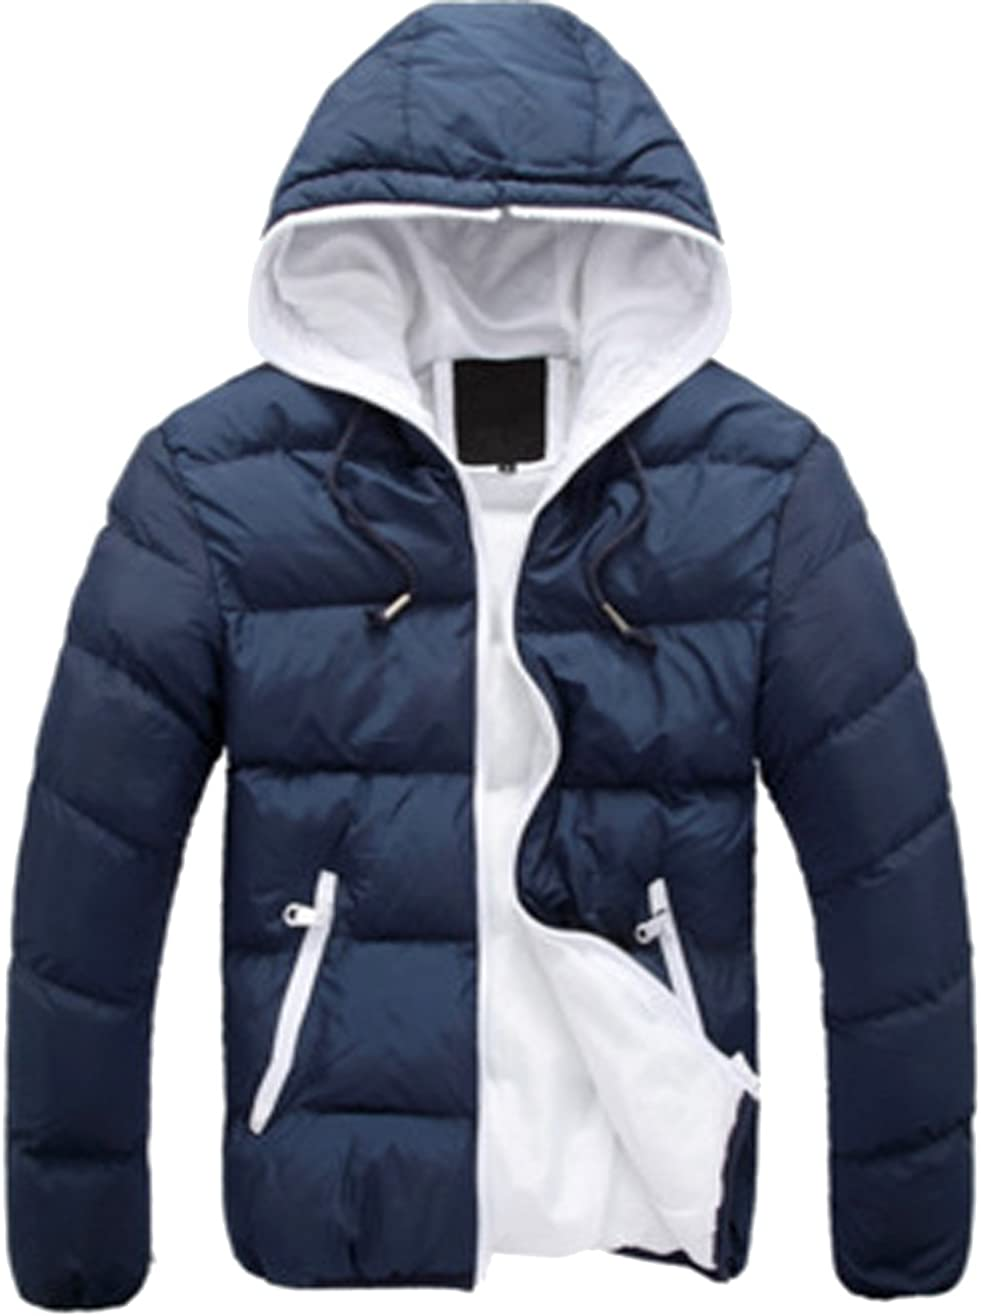 S&S Mens Warm Winter Candy Colors Contrast Lining Thicken Warm Puffer Compressible Jackets